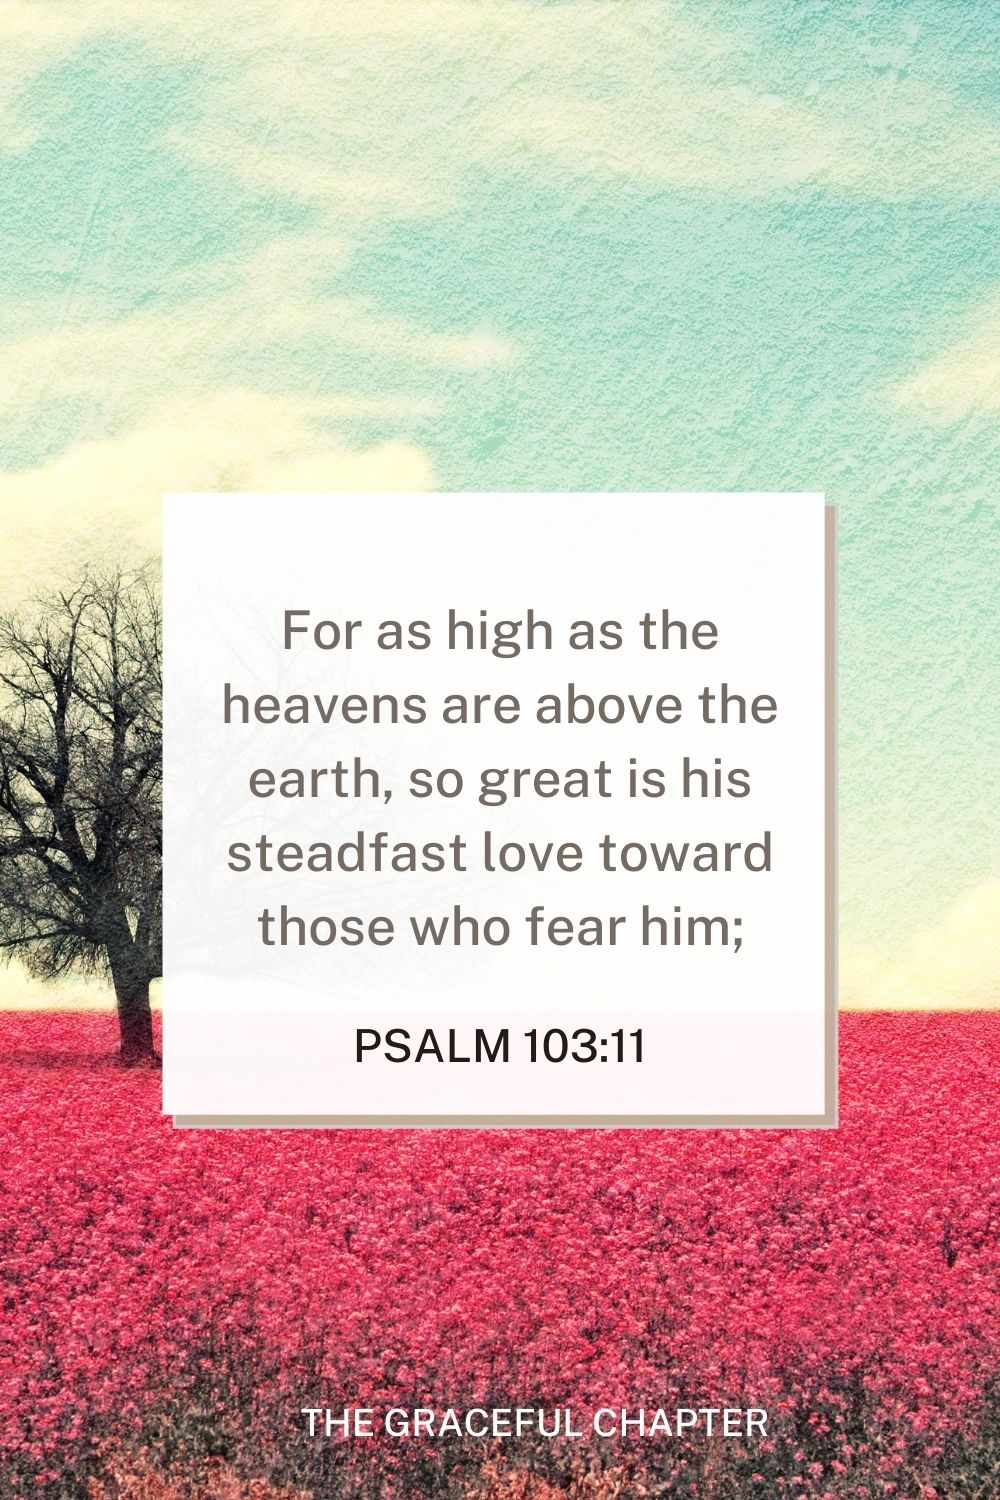 For as high as the heavens are above the earth, so great is his steadfast love toward those who fear him; Psalm 103:11